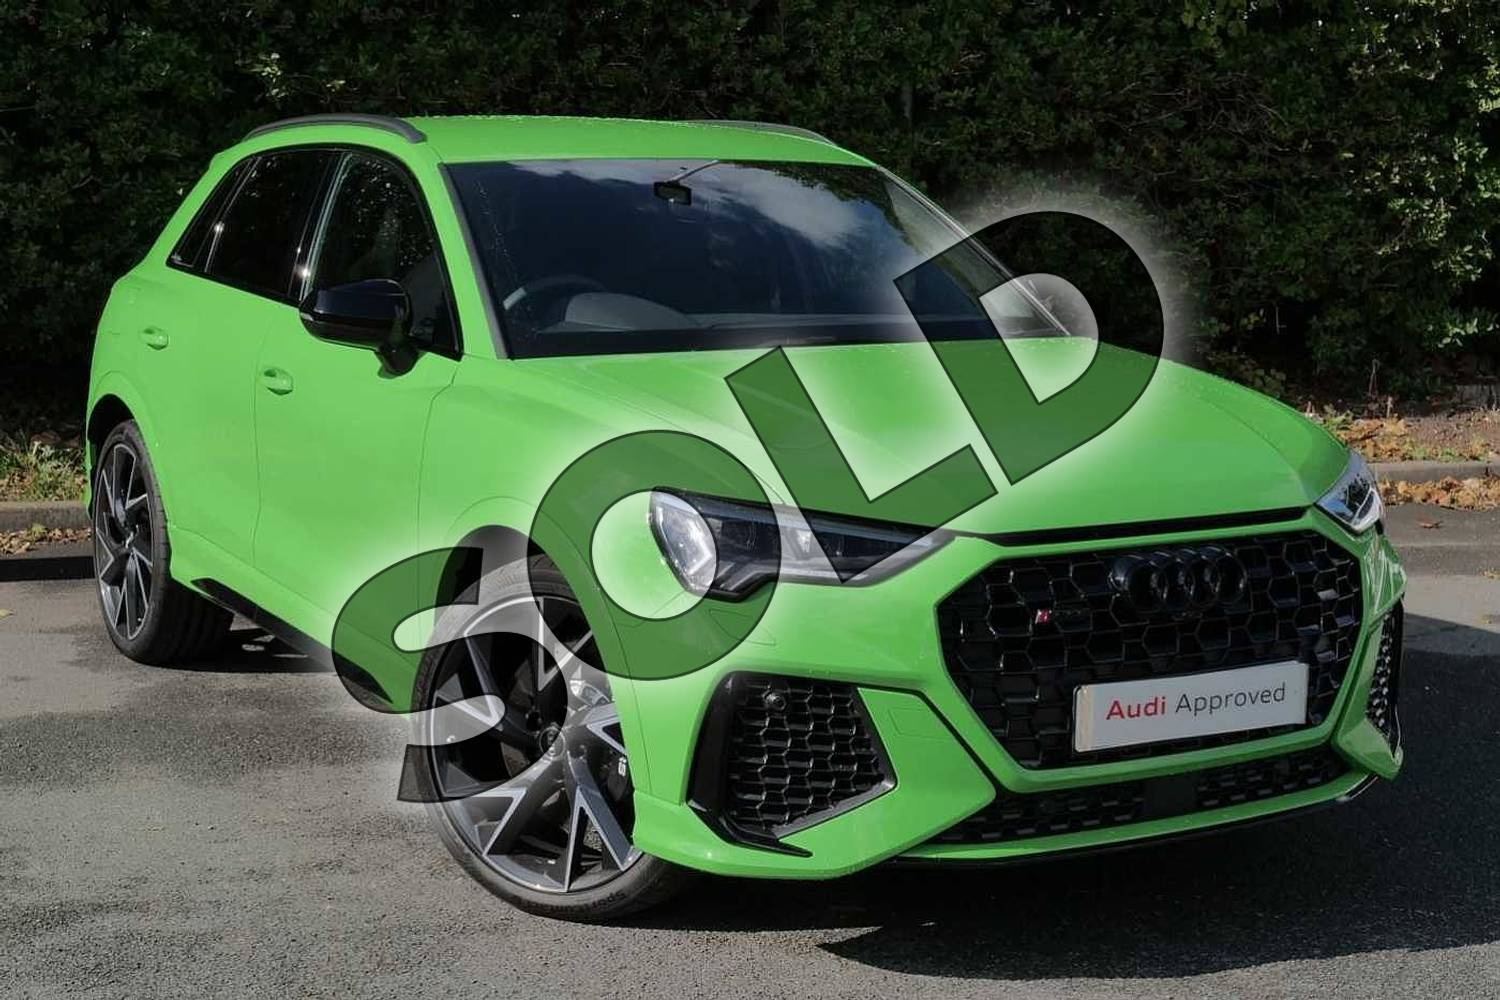 Audi Rs Q3 Rs Q3 Tfsi Quattro 5dr S Tronic For Sale At Worcester Audi Ref 024 U461589